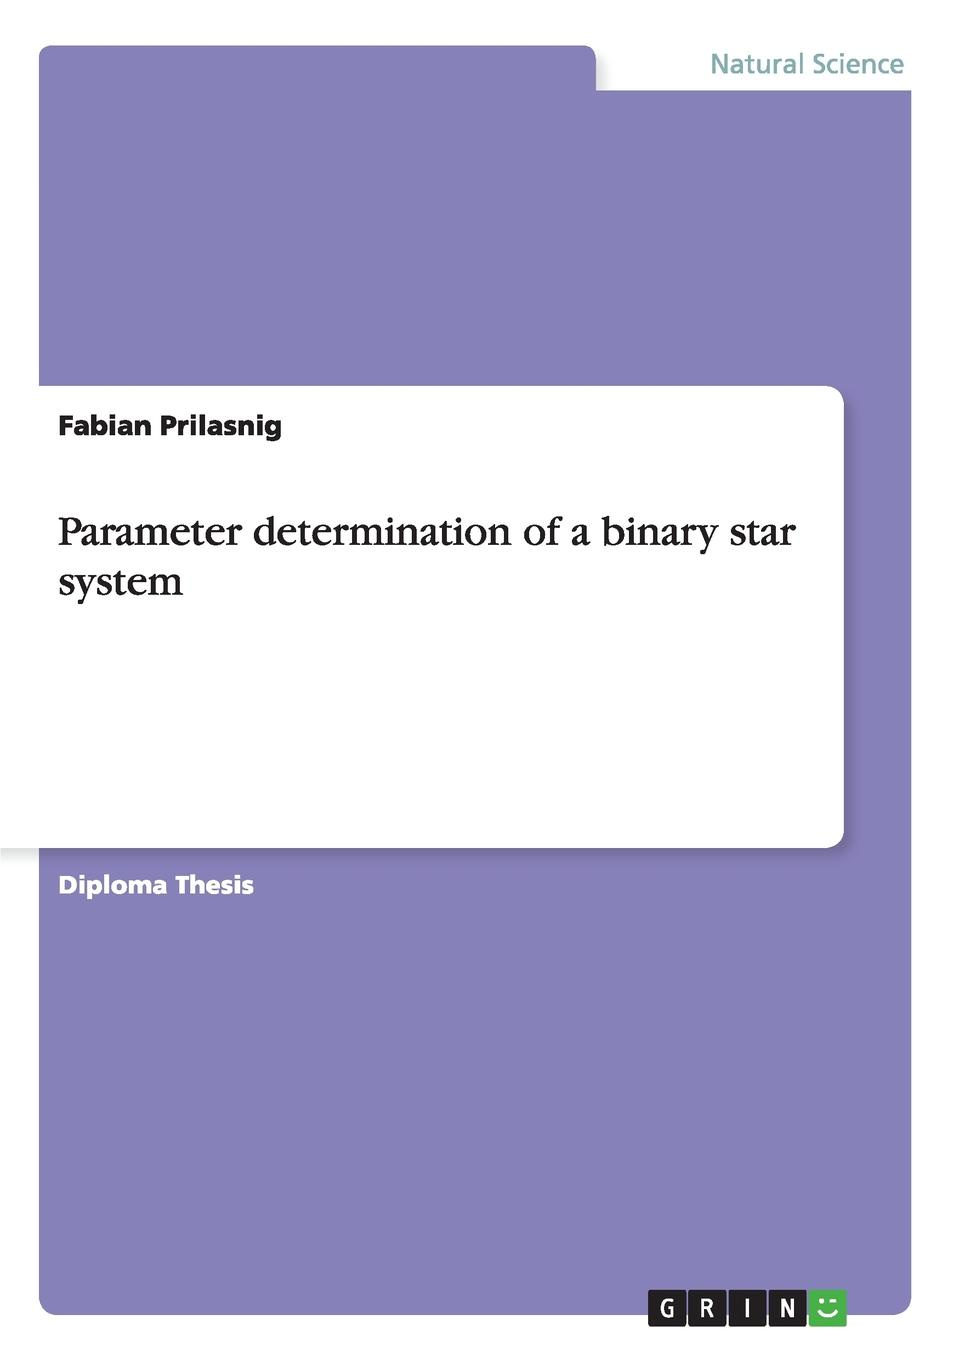 Fabian Prilasnig Parameter determination of a binary star system binary star